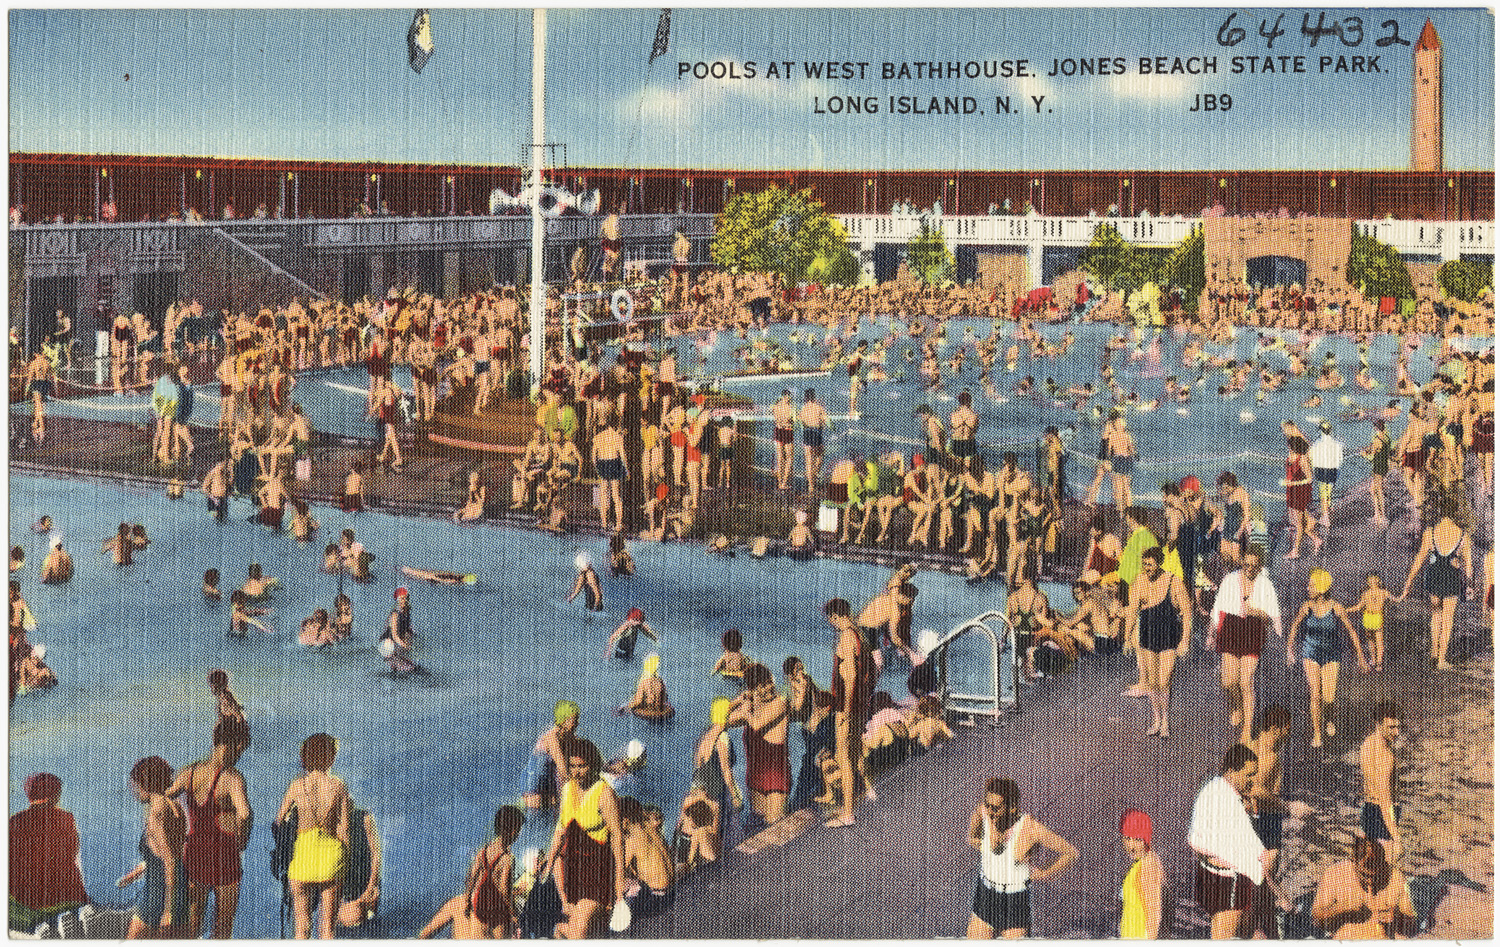 Pools At West Bathhouse Jones Beach State Park Long Island N Y Flickr Photo Sharing